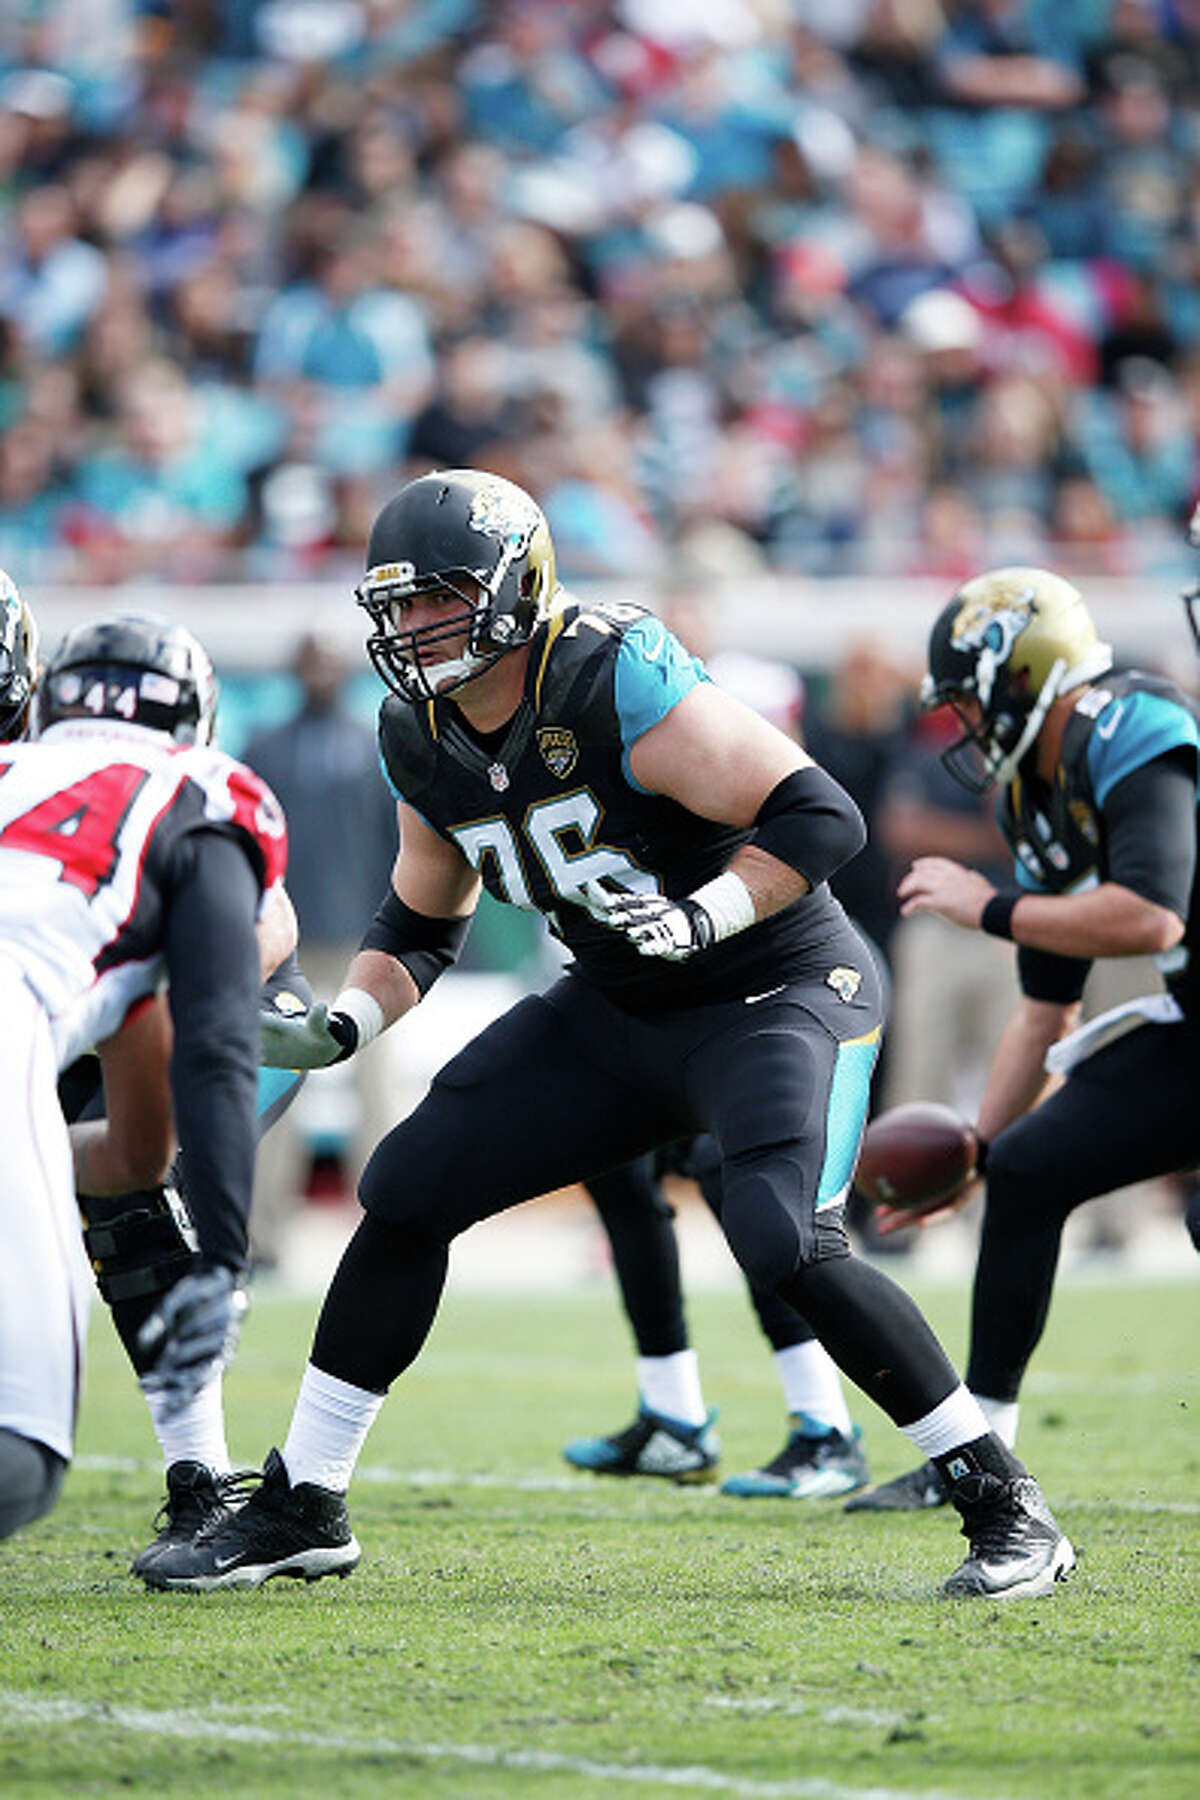 2. Jacksonville Jaguars: OL Luke JoekcelThe offensive lineman out of Texas A&M was the first draft selection under former Jags head coach and Seahawks defensive coordinator Gus Bradley. Joeckel moved from left tackle to guard last season, then suffered a season-ending left knee injury in October. He signed a one-year deal with Seattle in March.